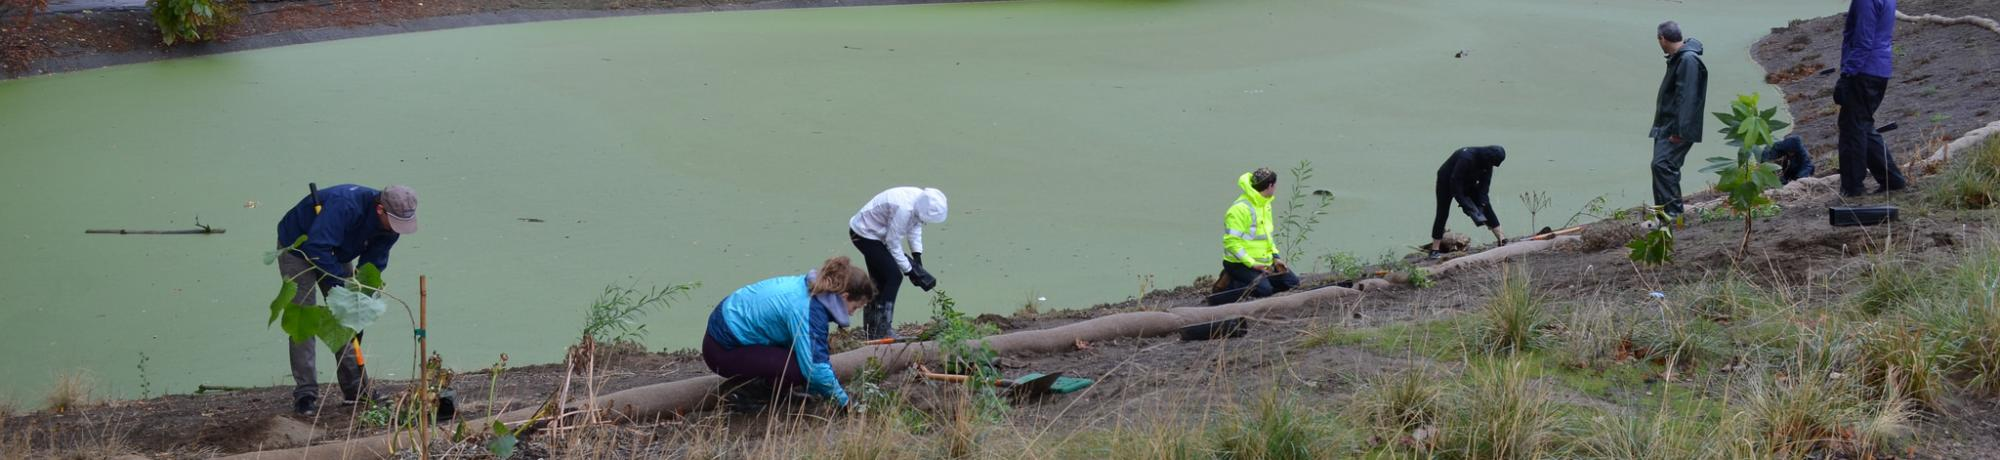 Image of UC Davis Learning by Leading students restoring a portion of the banks along the Arboretum Waterway.